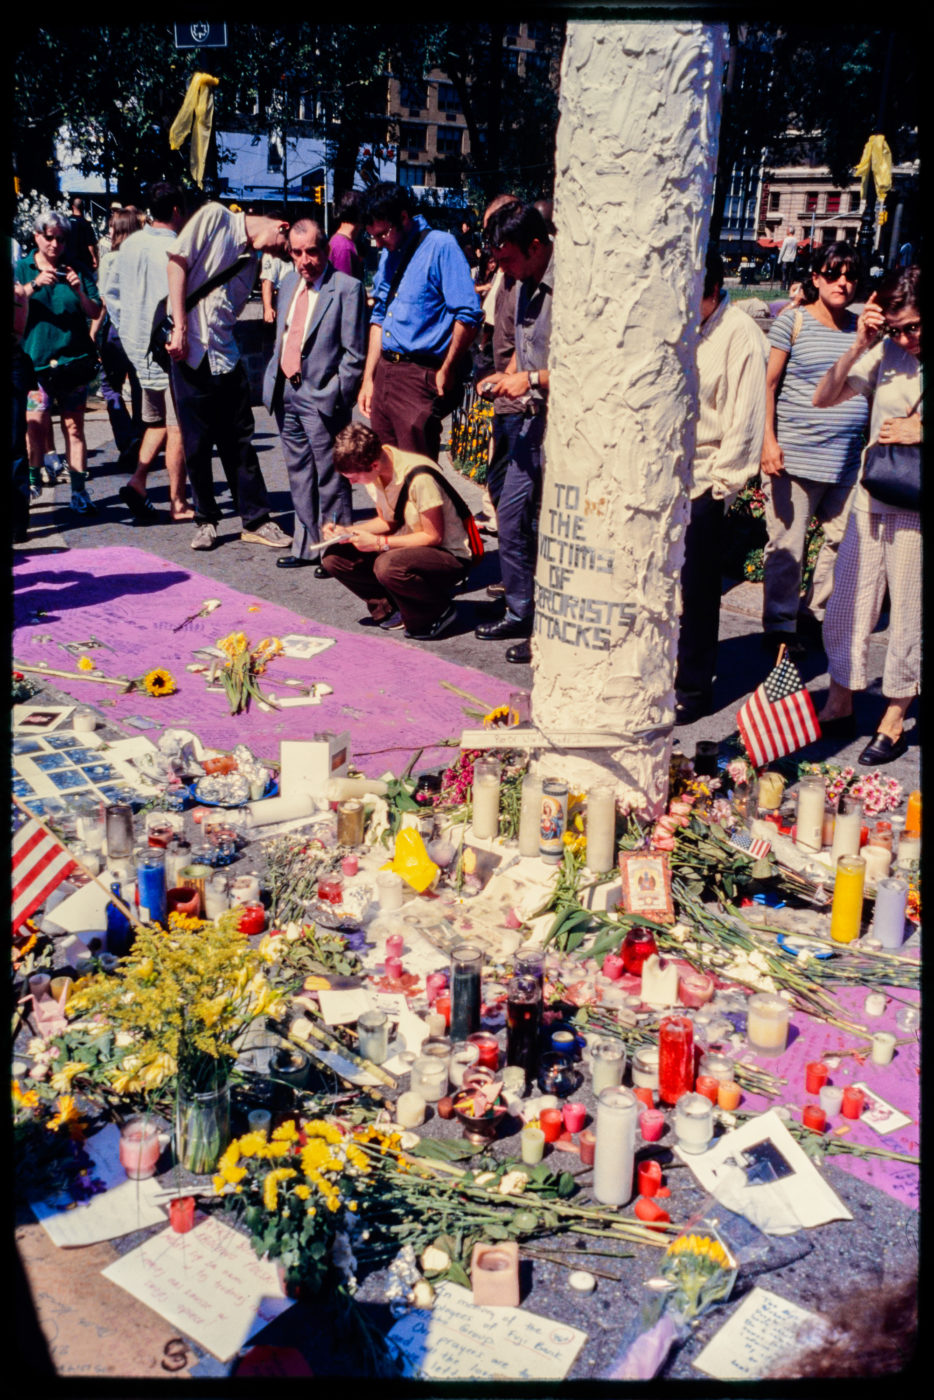 New Yorkers Standing by Prayer Candles and Flowers for Victims of Attack in Union Square.jpg